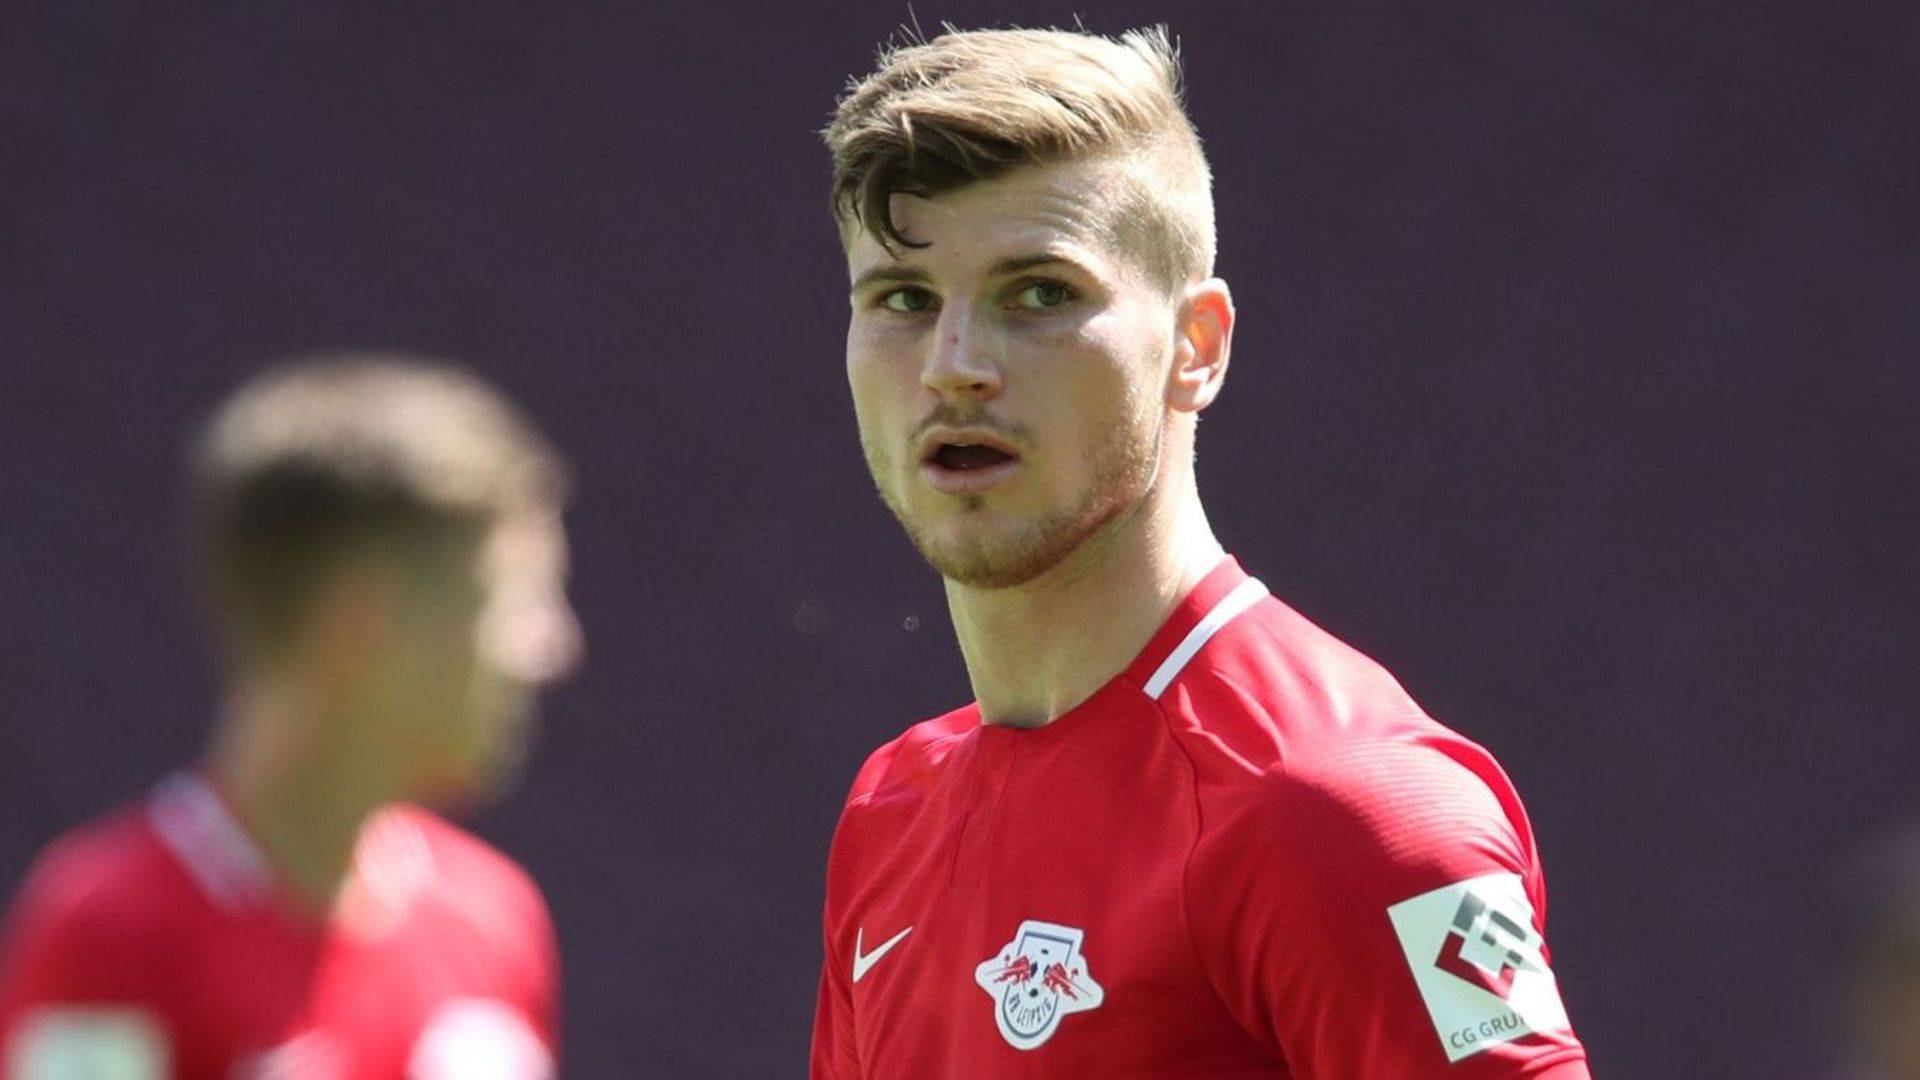 Bundesliga: Werner at double, Dortmund thumped